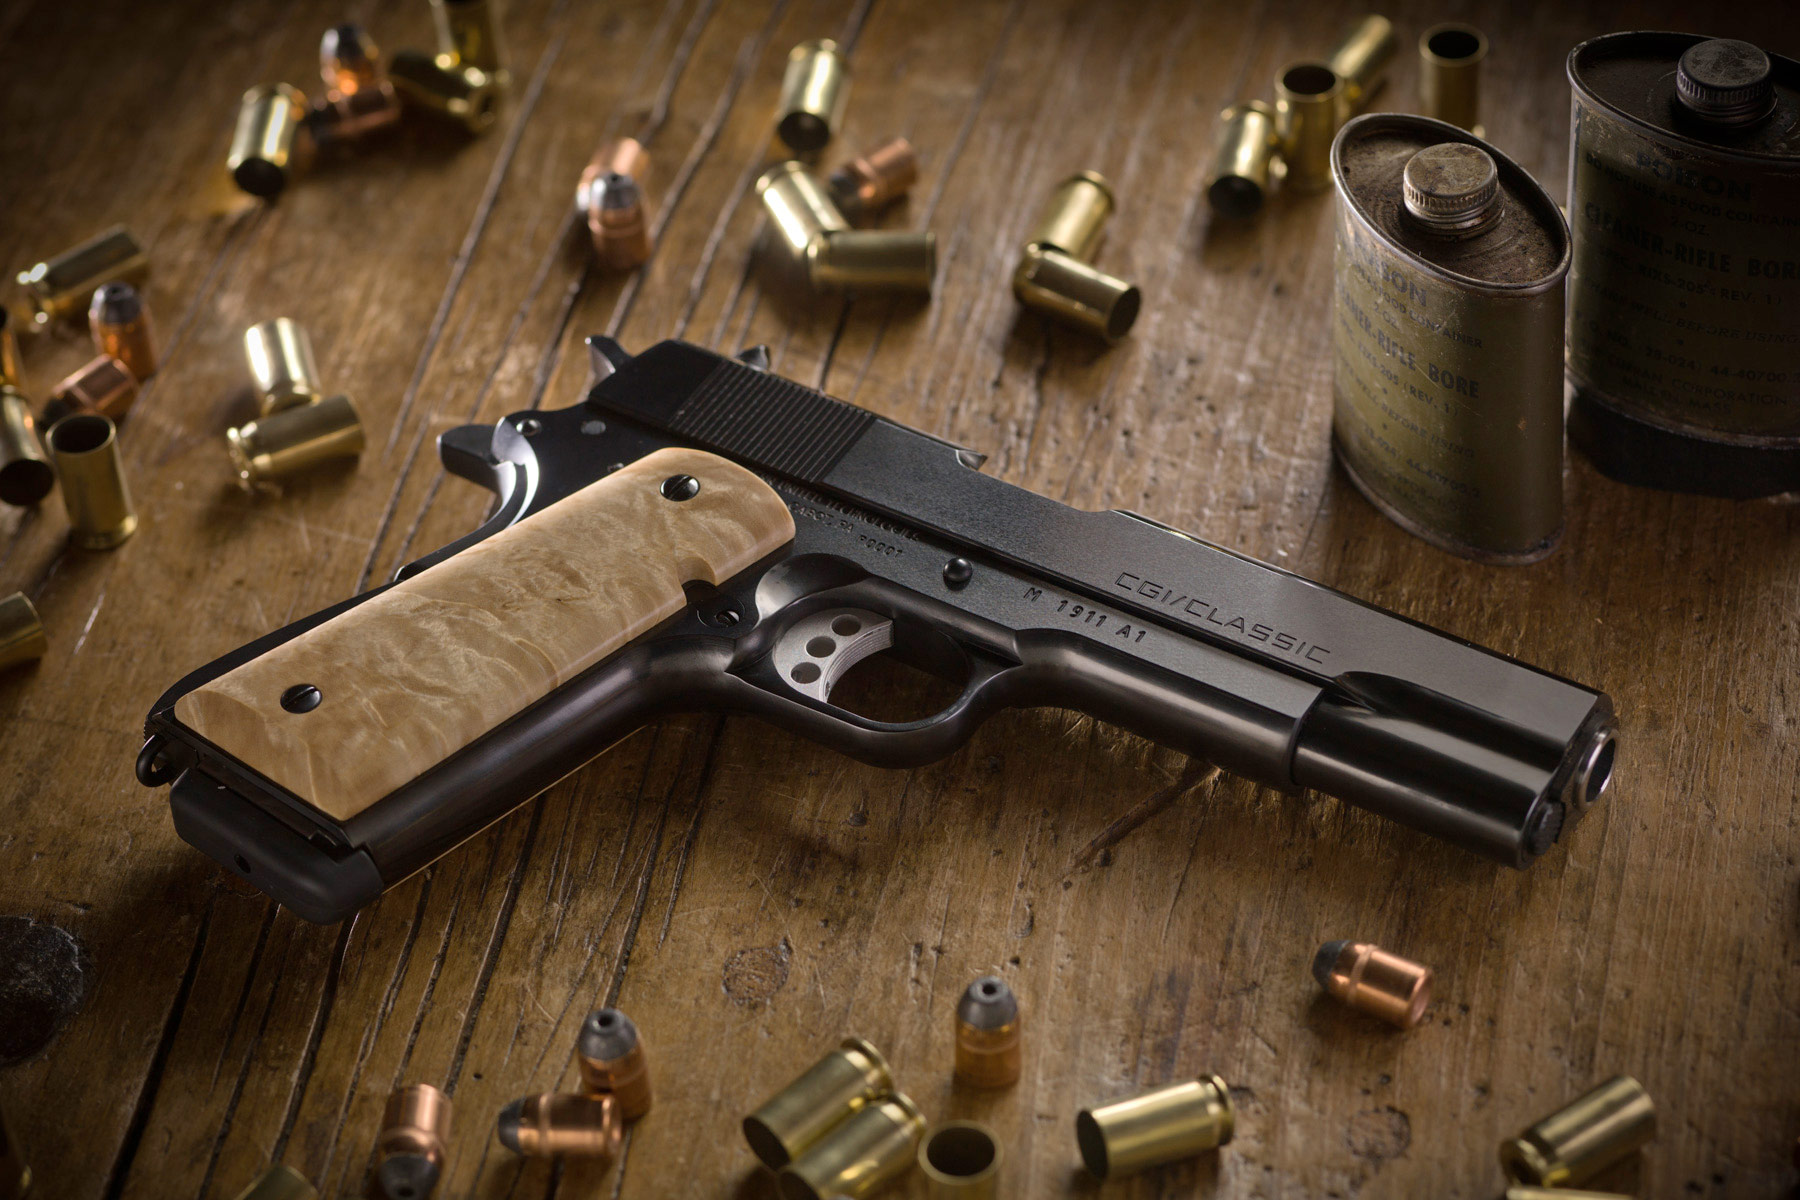 CGI Classic 1911 Pistol Background Wallpaper - HD Wallpapers